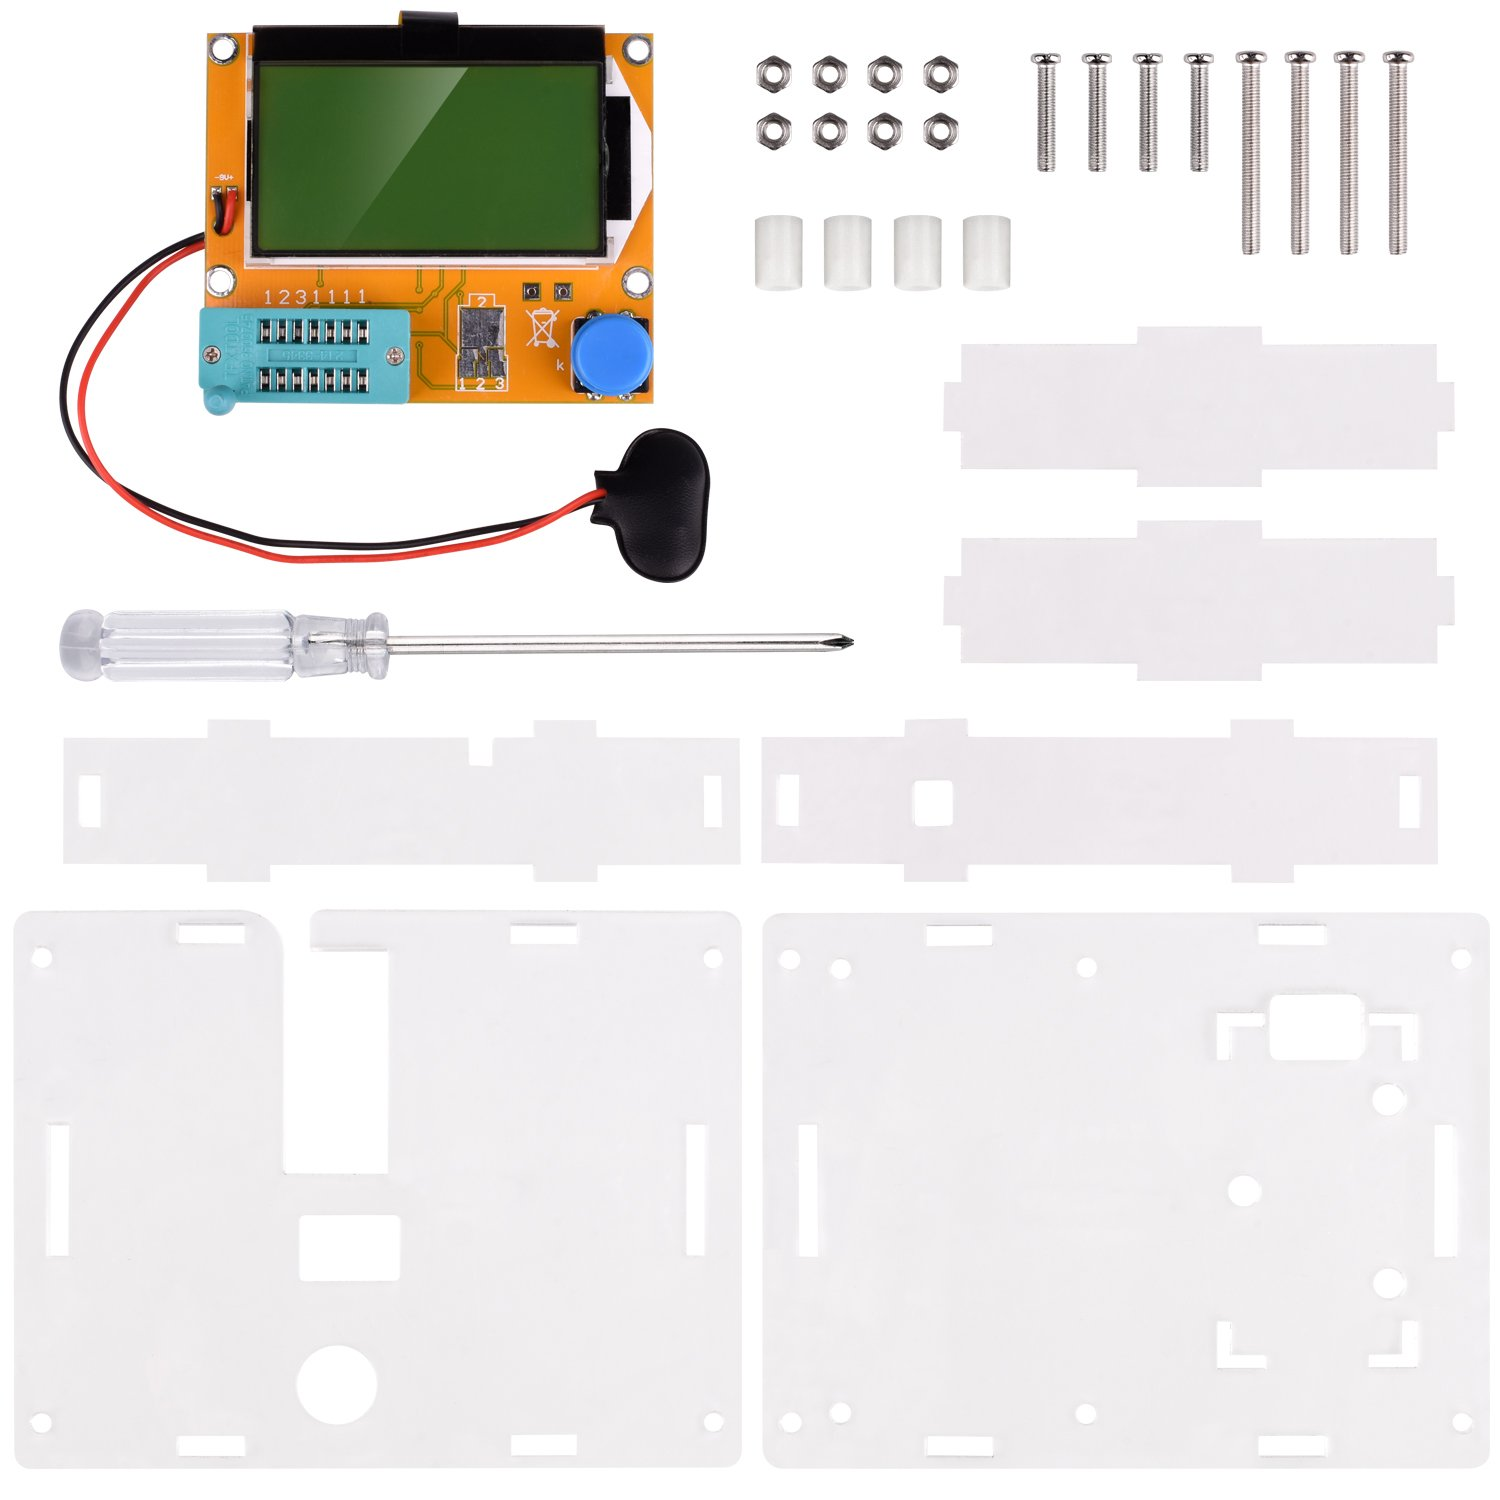 Multifunction Meter Diy Kit Kuman Mega 328 Graphic Transistor Quality Checker With Buzzer Tester Npn Pnp Diodes Triode Capacitor Esr Scr Mosfet Resistor Inductance Lcd Display